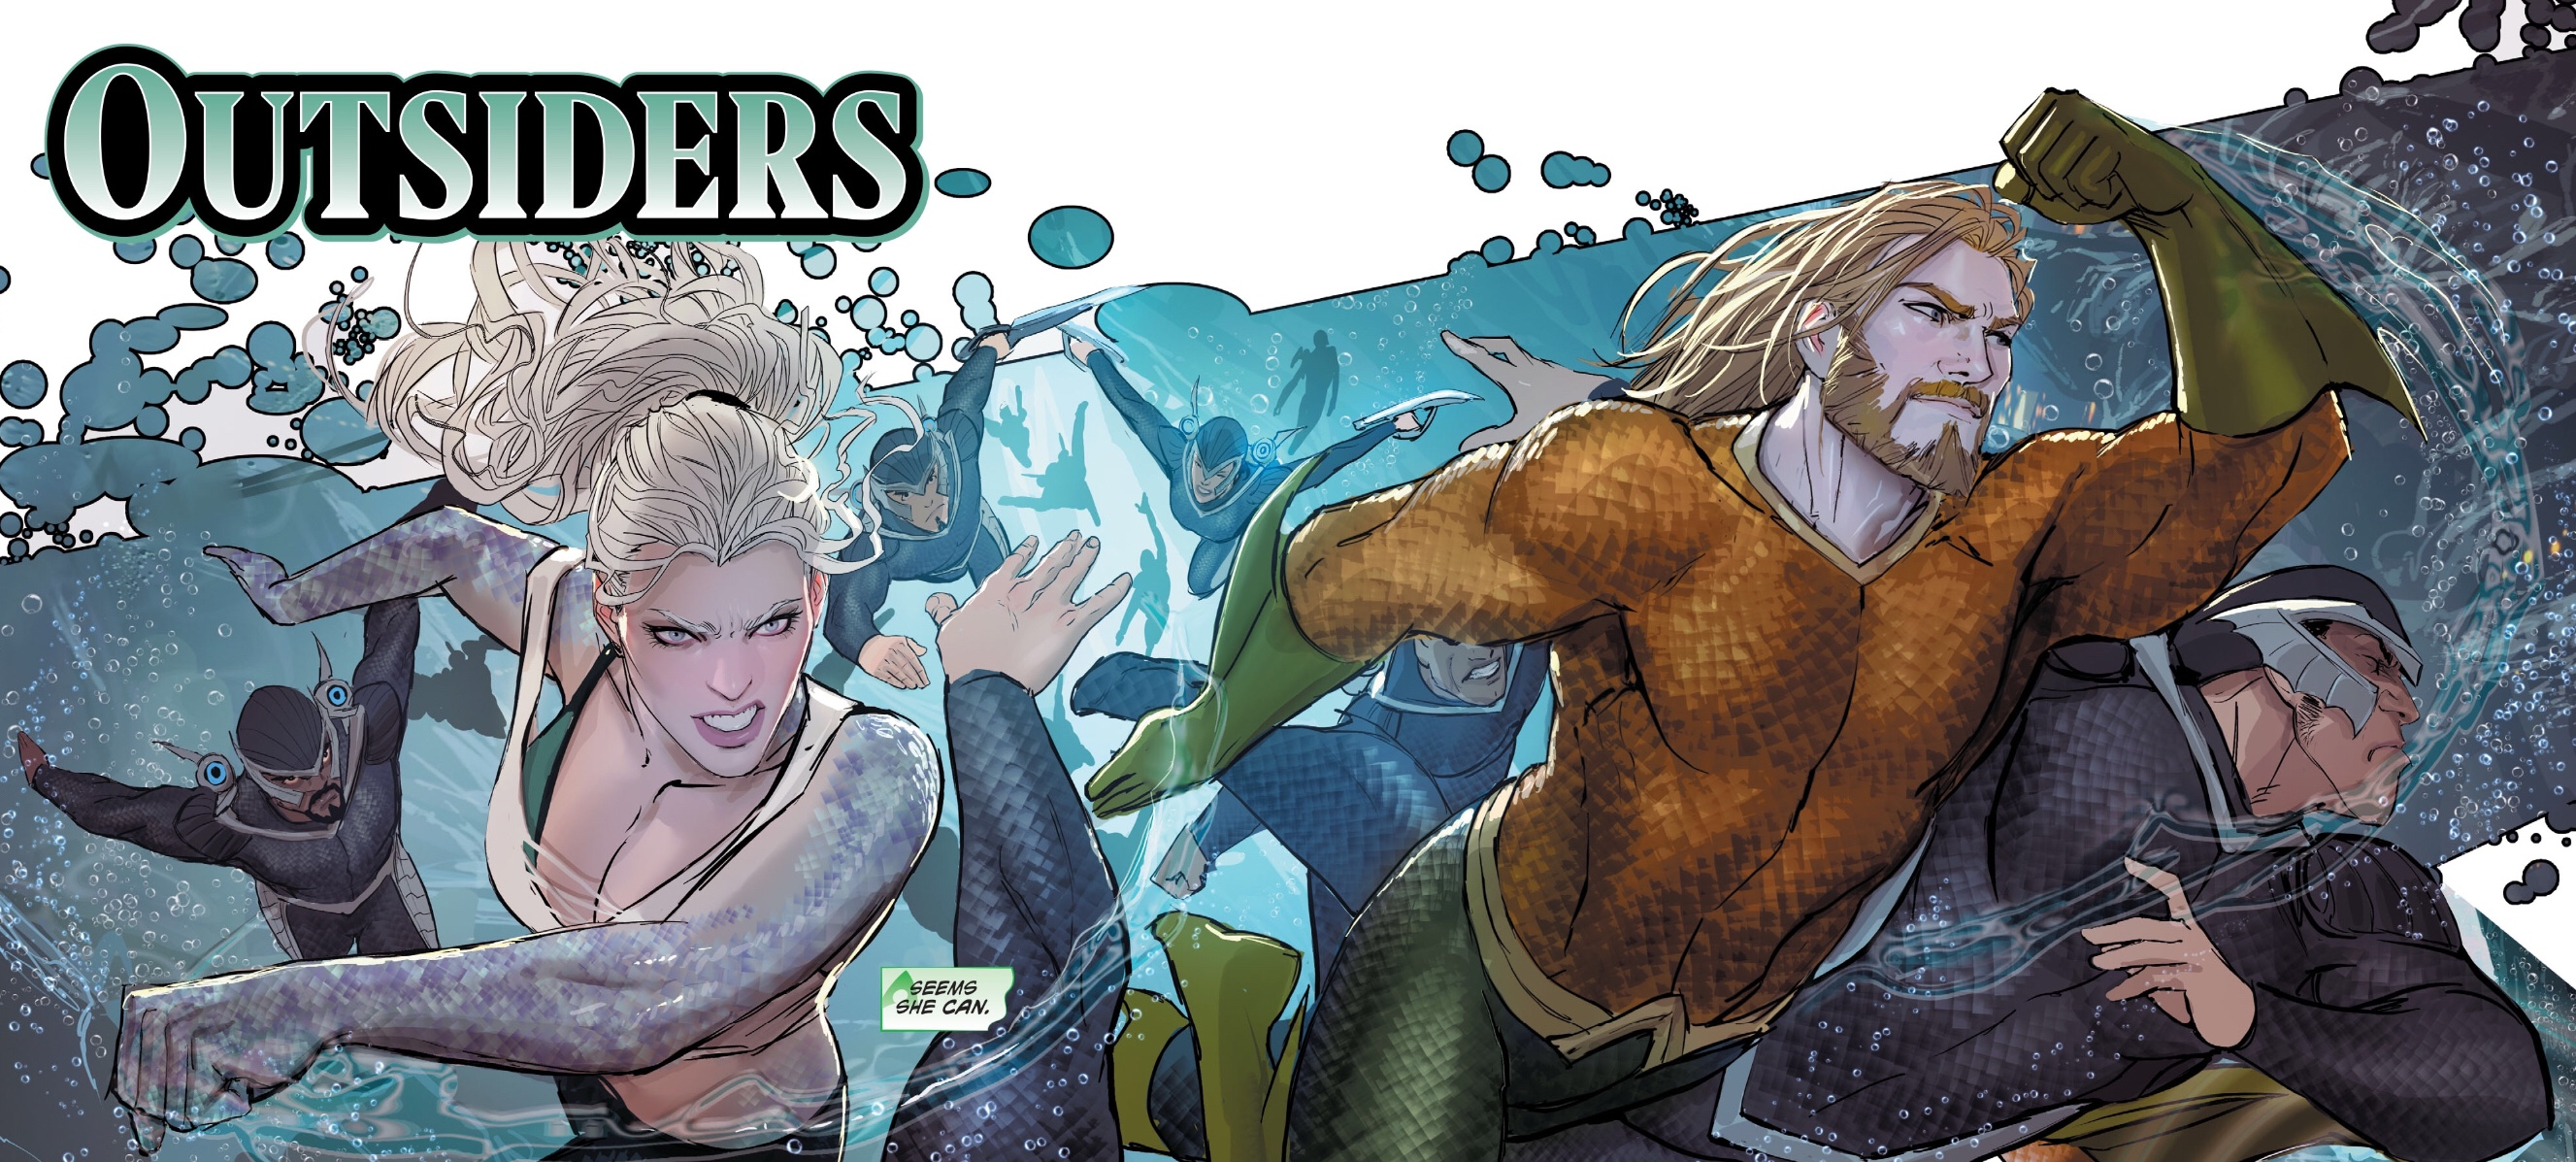 6 Aquaman stories to read after you've seen the movie